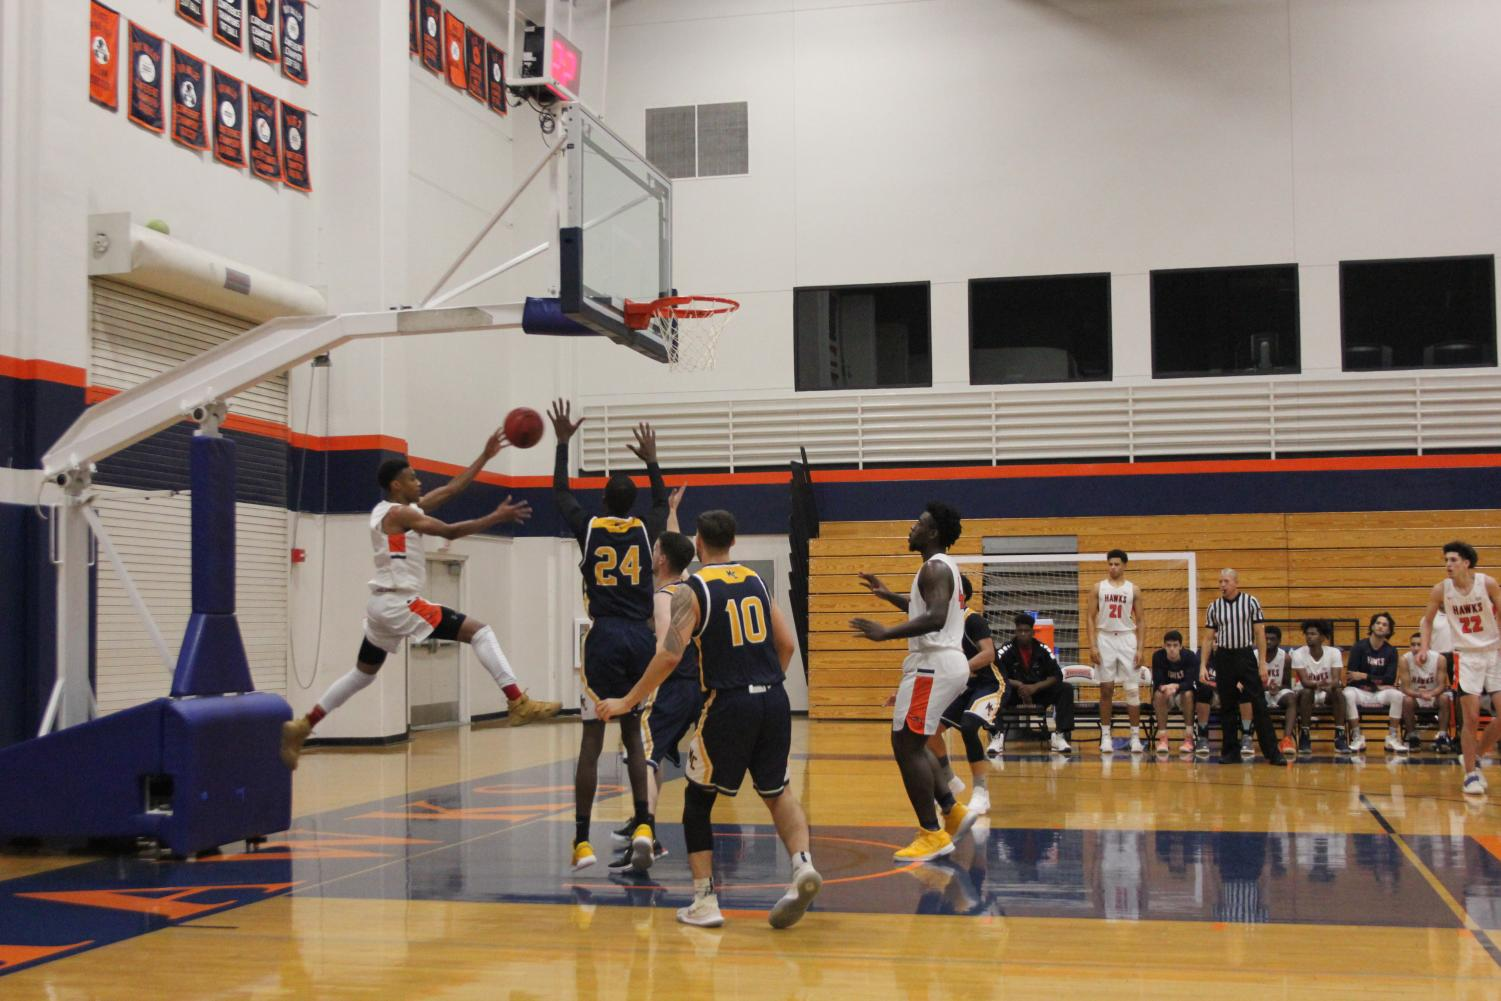 Sophomore Kenneth Cooley leaps to save the ball from going out of bounds during the Hawks 80-62 win against Merced on Nov. 30.